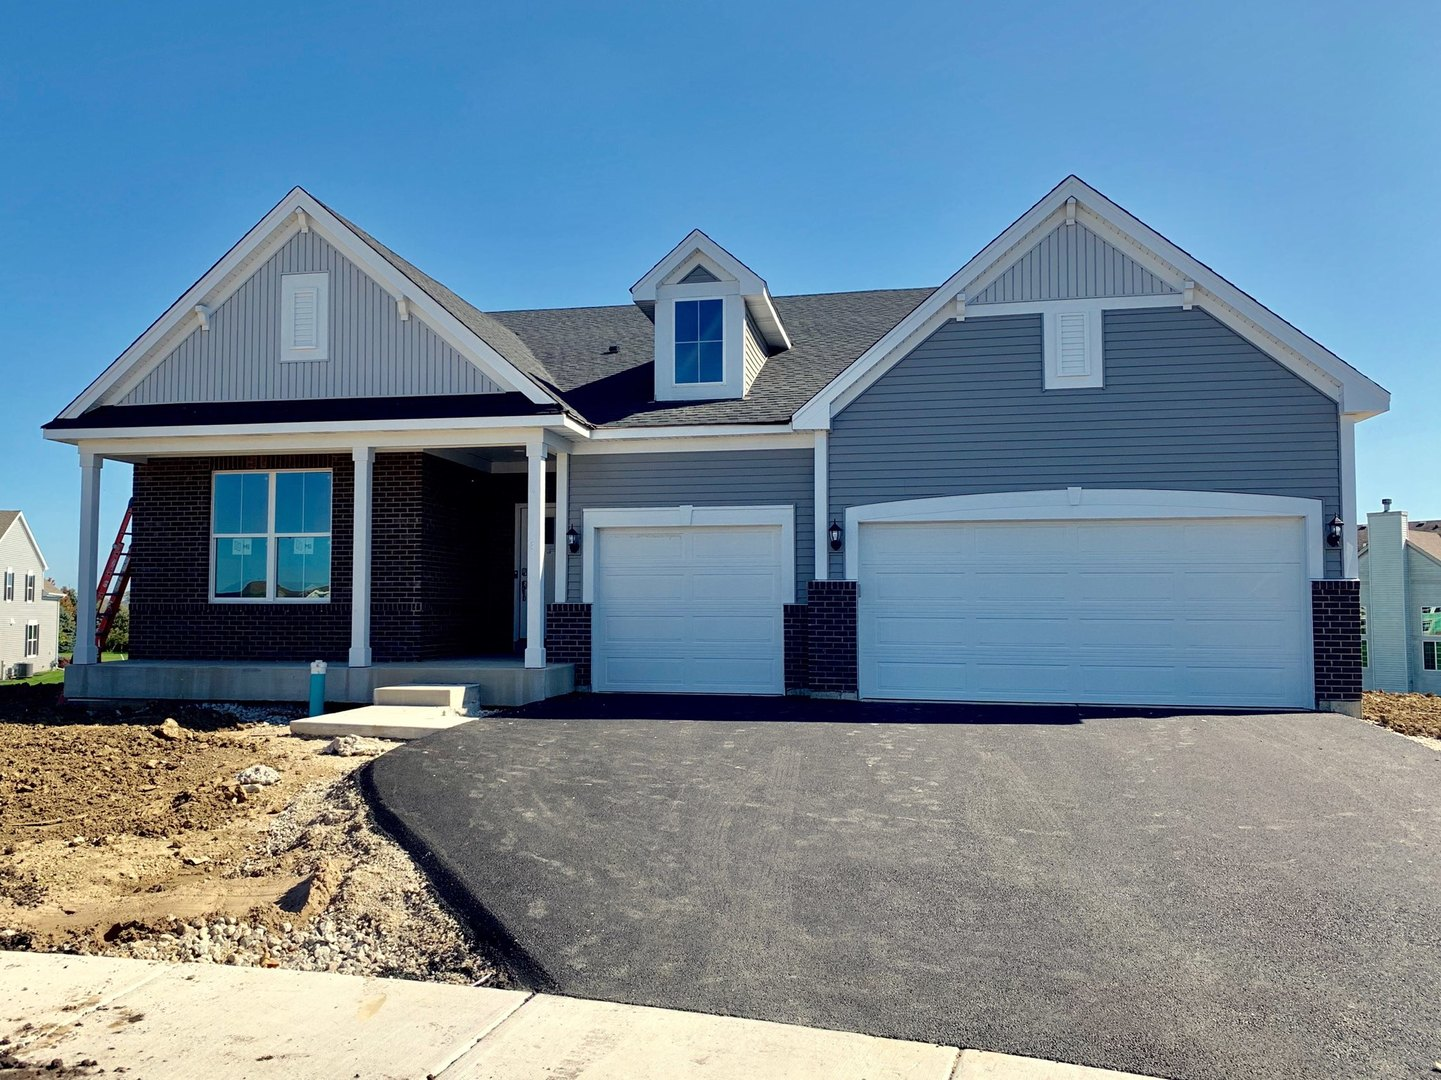 Photo for 9272 Enstrom Court, Huntley, IL 60142 (MLS # 10507074)